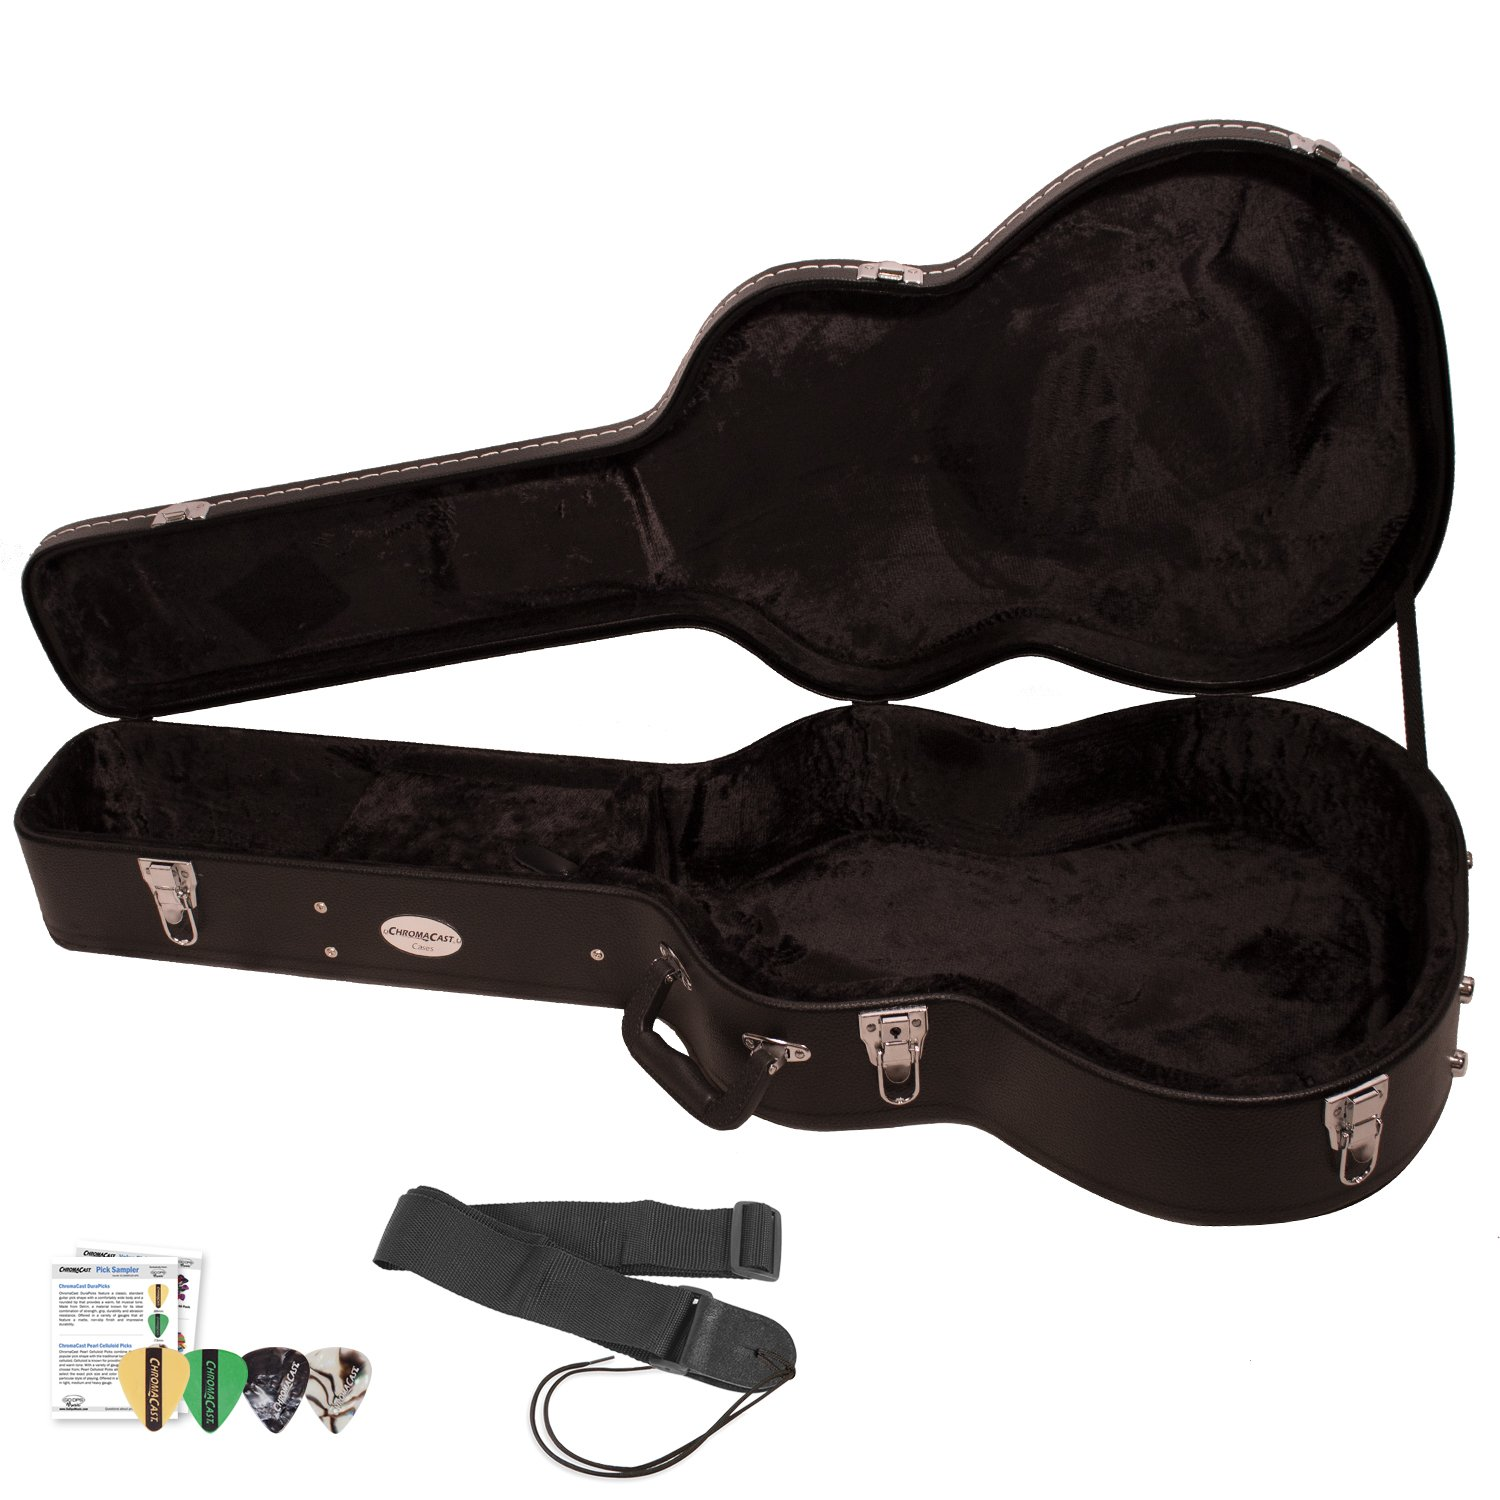 fff411eaf3 Amazon.com: Acoustic Guitar Hard Case (CC-AHC) with Guitar Strap & Planet  Waves/GoDpsMusic Pick Sampler: Musical Instruments